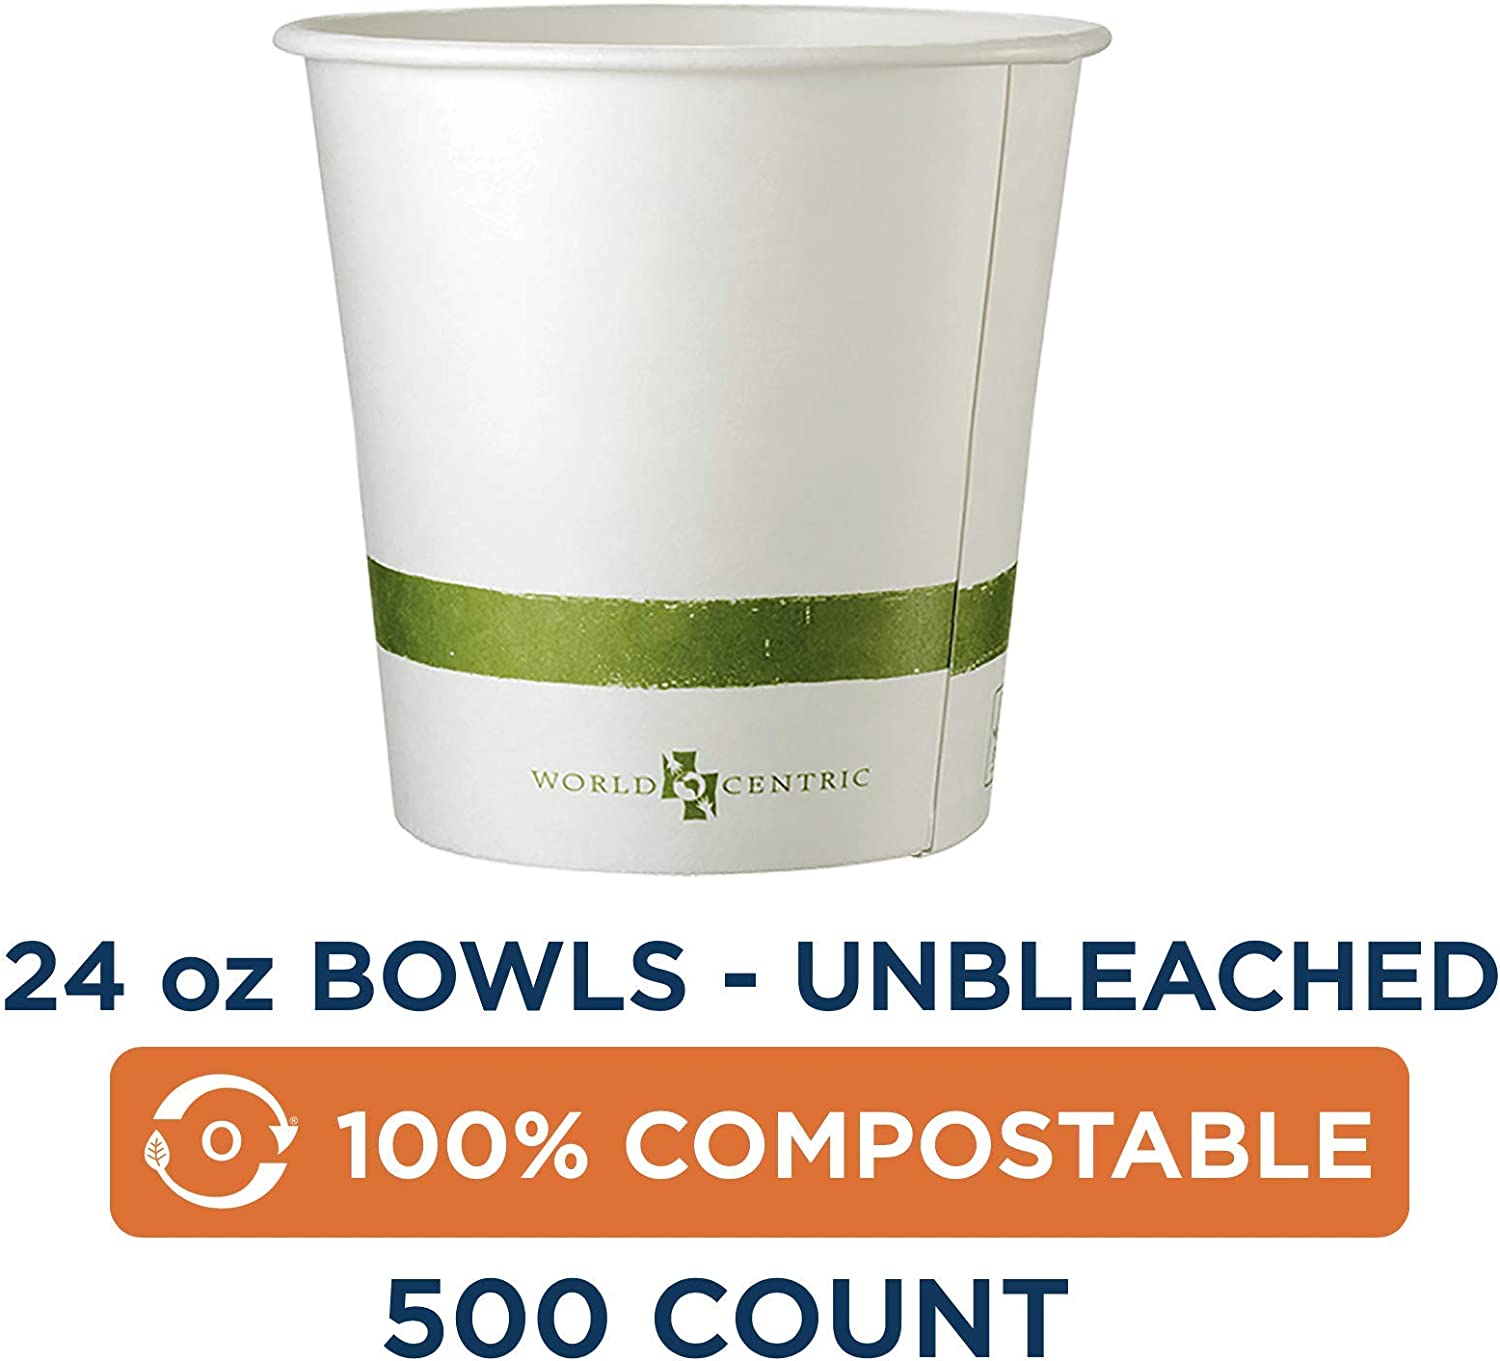 100% Compostable Bowls by World Centric, Made from Unbleached Plant Fiber, Paper Bowls, 24 oz (Pack of 500) 61ddfAOAlUL